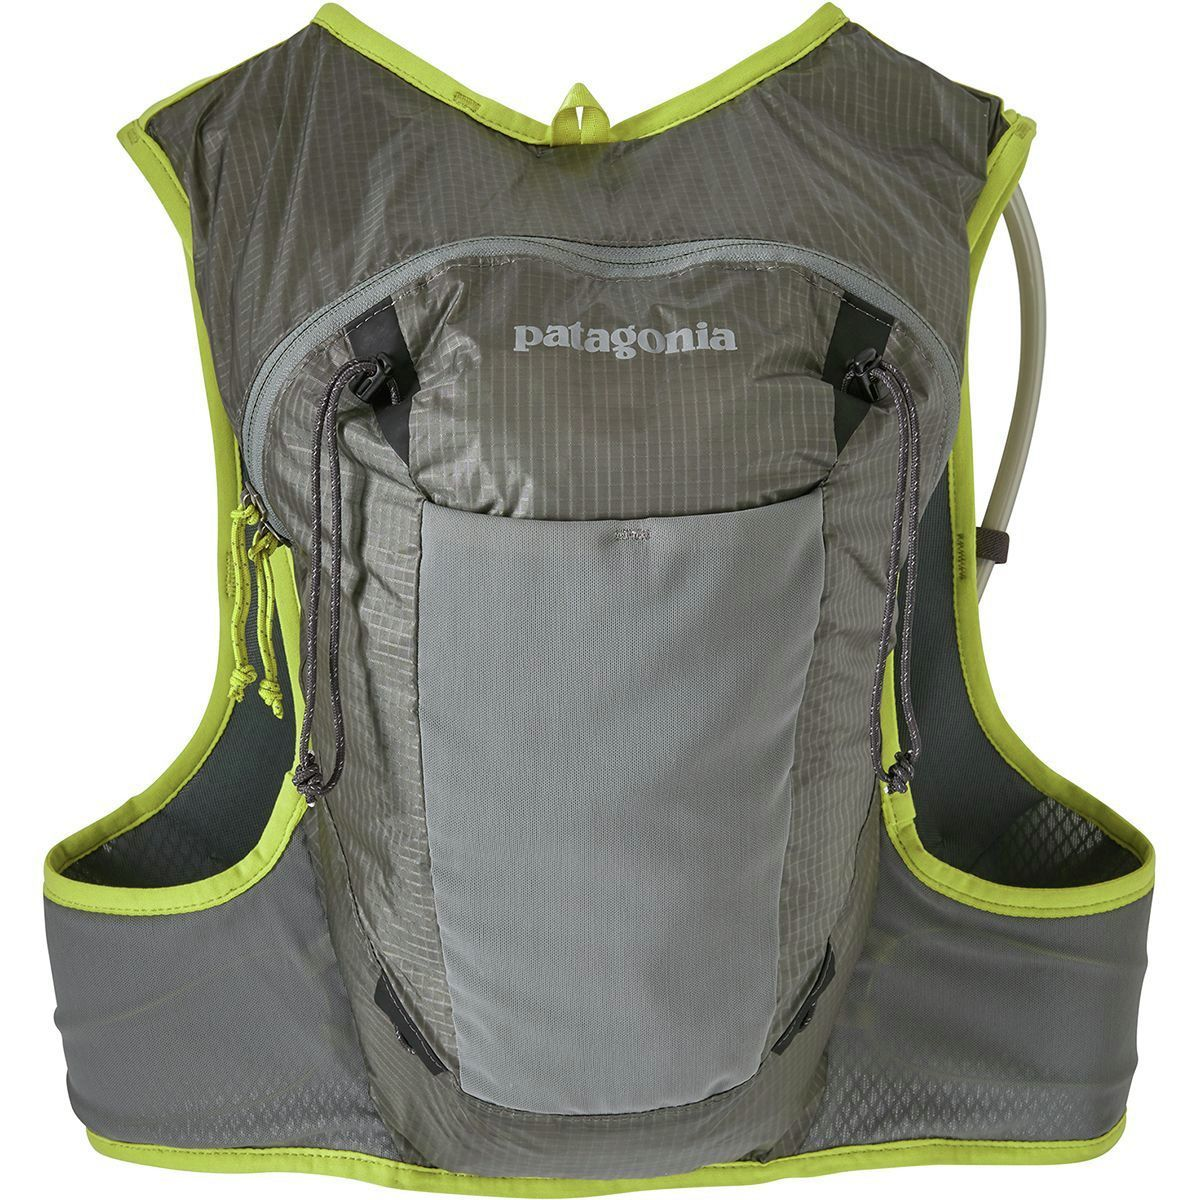 Patagonia Slope Runner Pack 8L